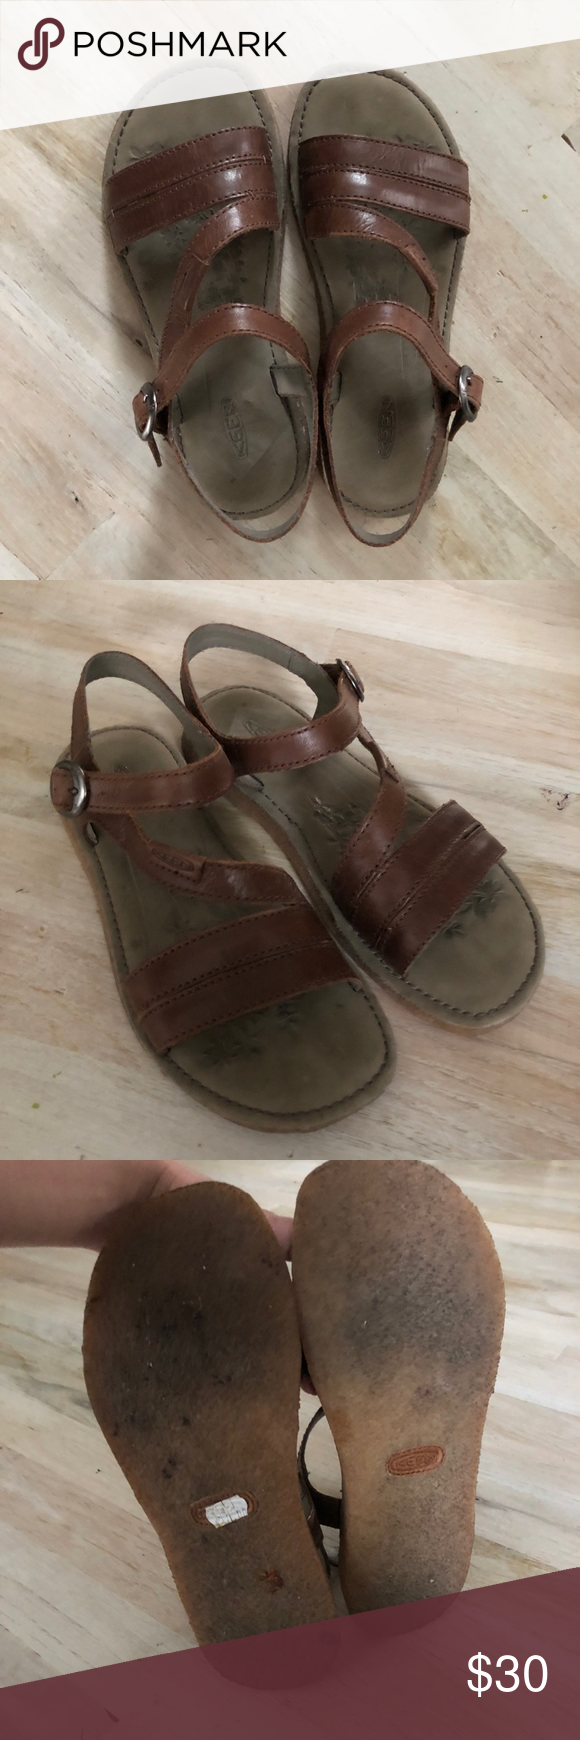 ef03de89773c Keen Sierra Dress Sandal Full grain leather with a synthetic sole. EUC!  Shows no signs of wear! Keen Shoes Sandals